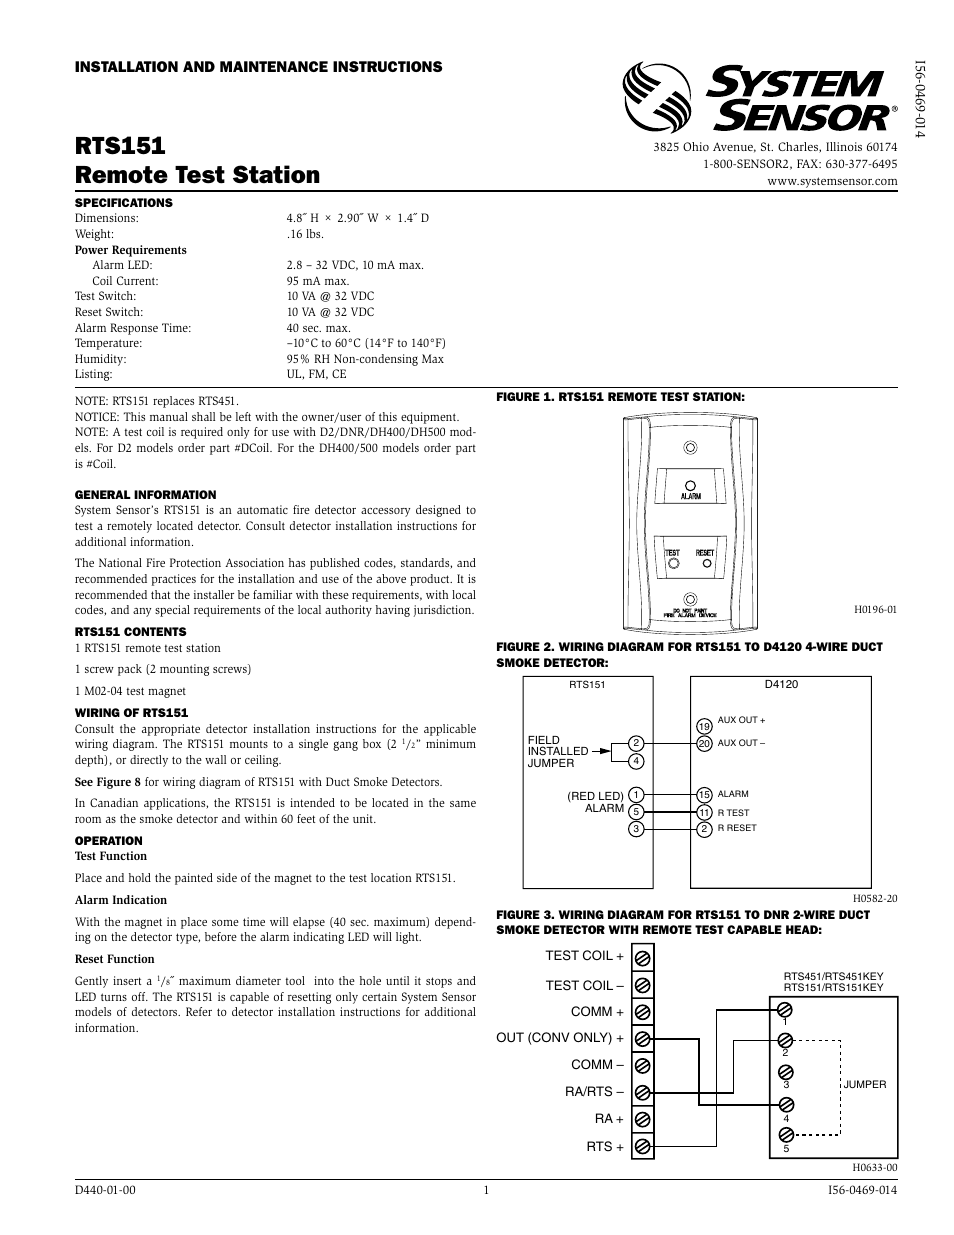 system sensor rts151 page1 system sensor rts151 user manual 2 pages 5R55E Transmission Wiring Diagram at bakdesigns.co